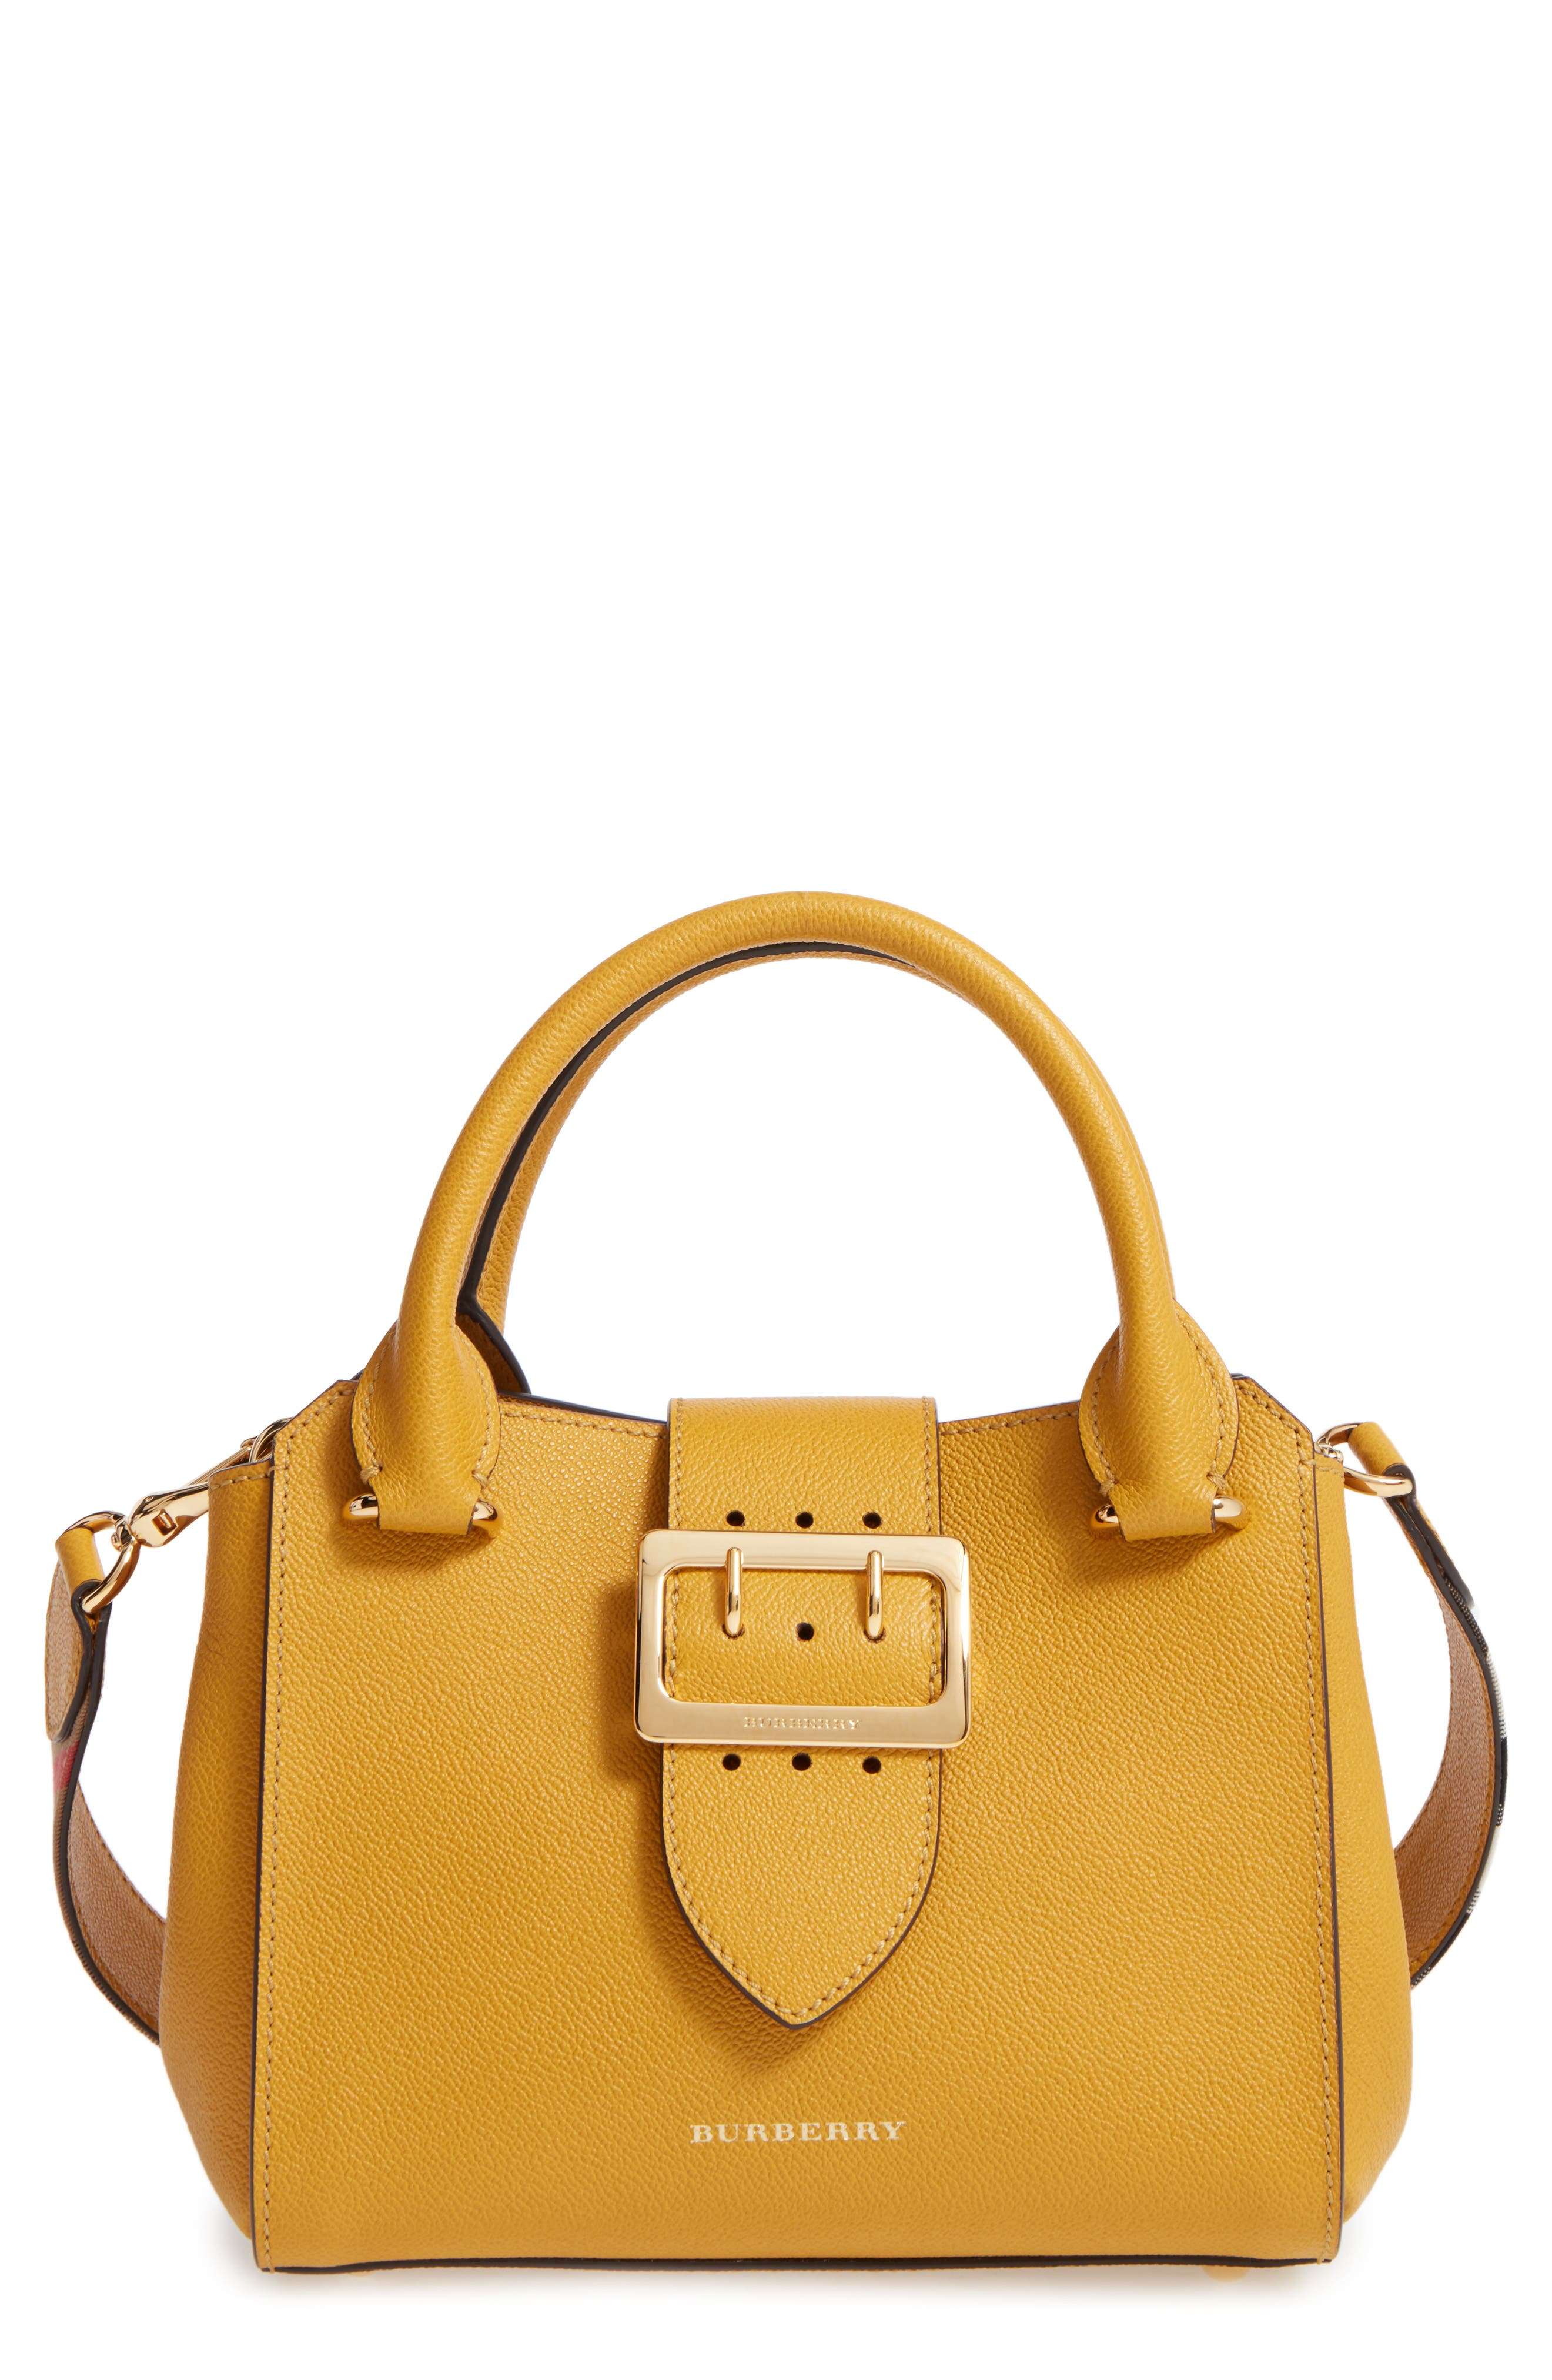 Alternate Image 1 Selected - Burberry Small Calfskin Leather Tote